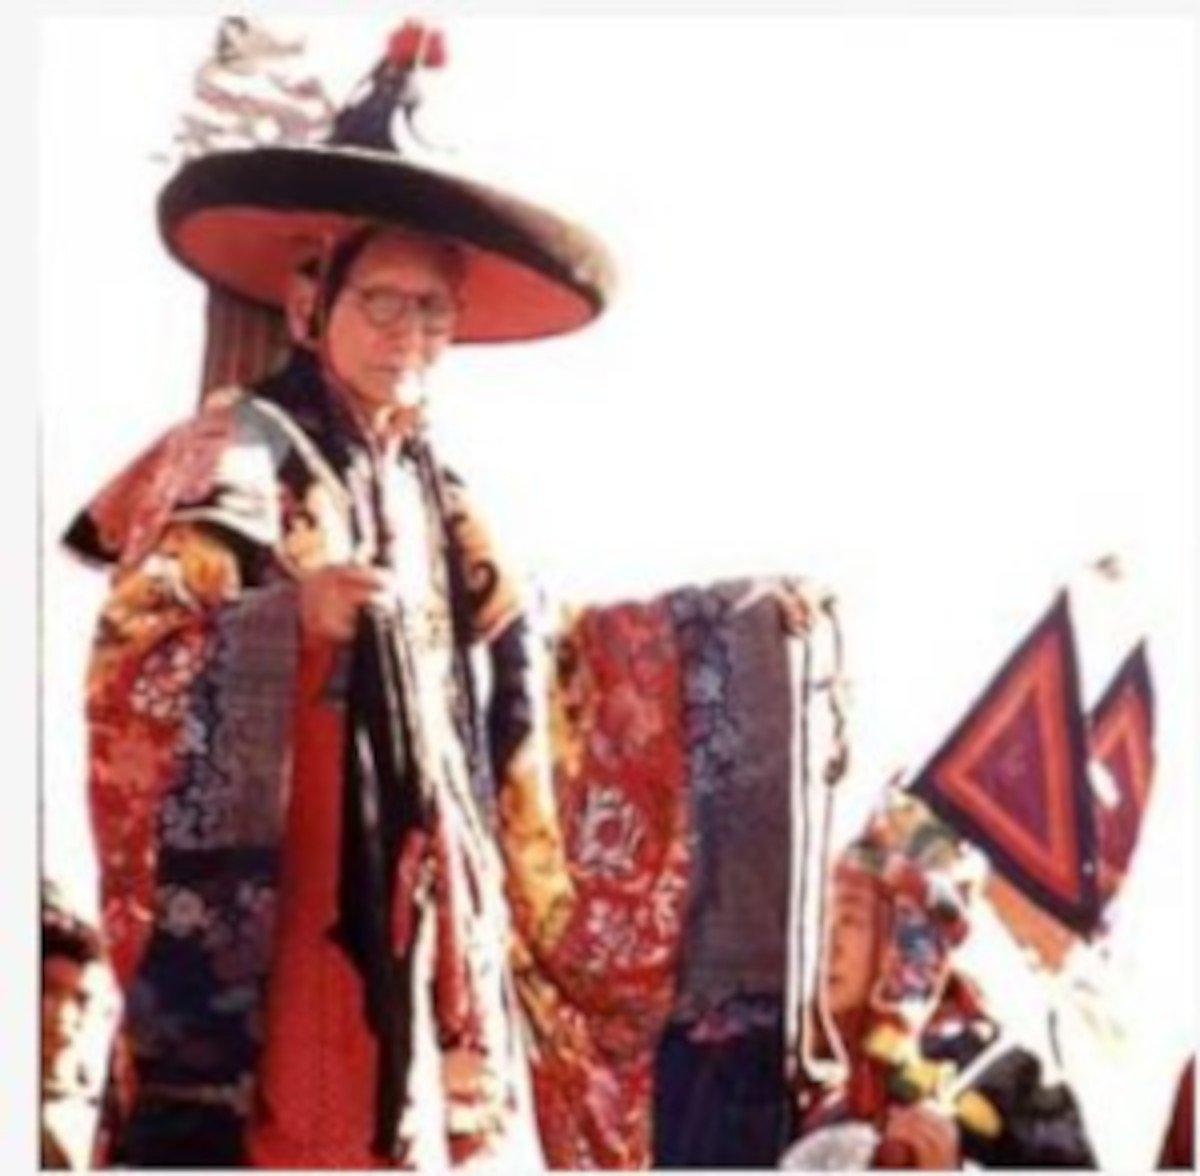 Black Hat Lama preparing for religious sacrifice at the New Year's ceremony, Sikkim